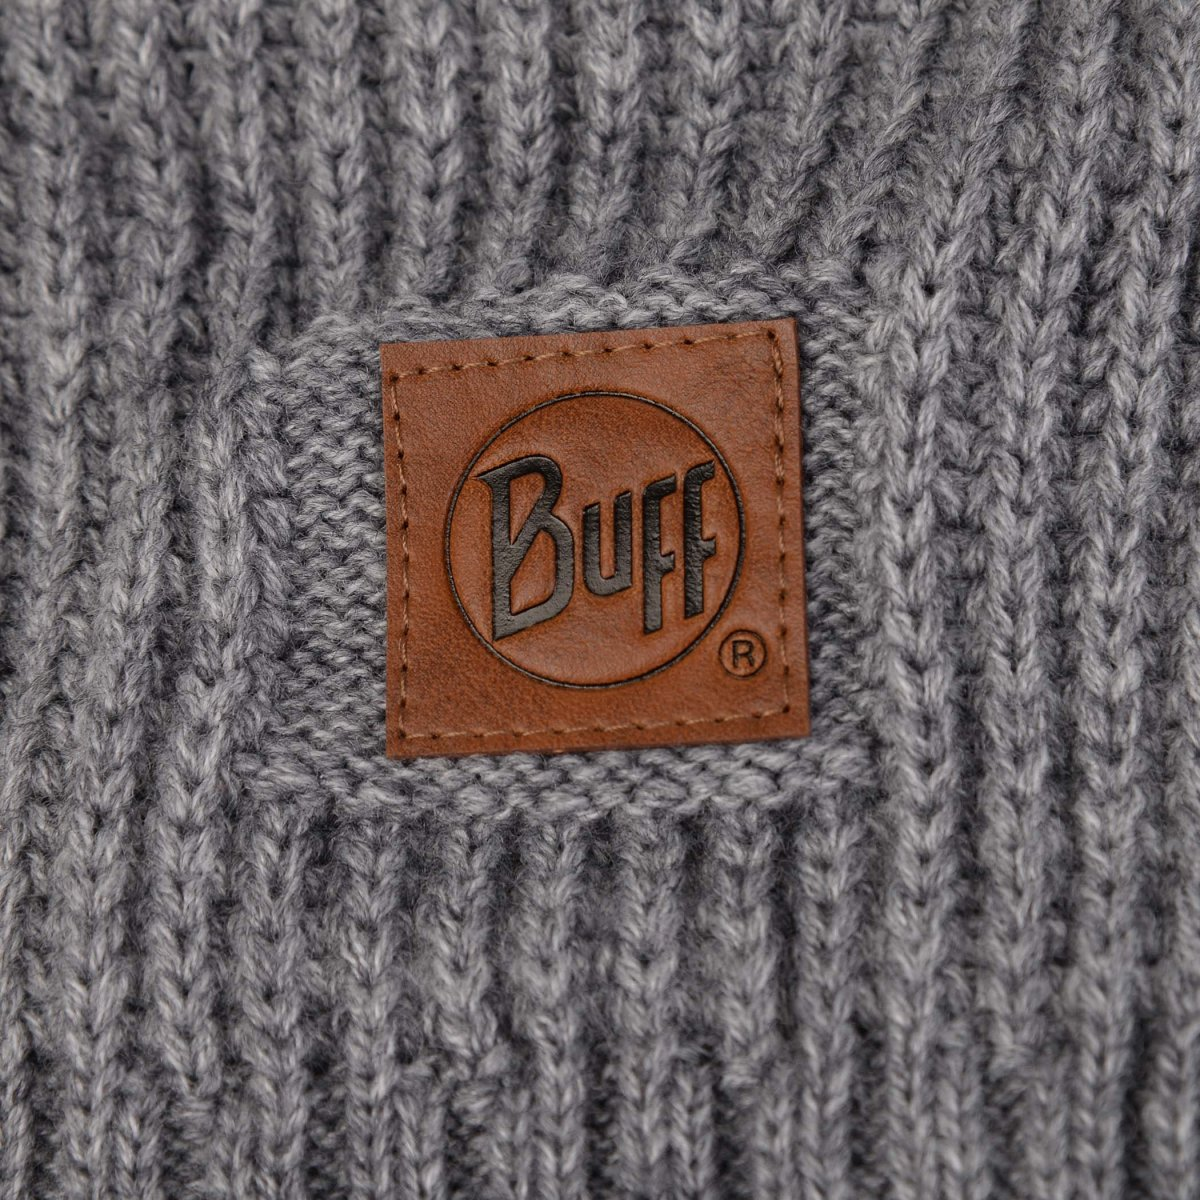 Шарф многофункциональный Buff Knitted & Polar Neckwarmer Rutger melange 5 Knitted & Polar Neckwarmer BU 117902.938.10.00